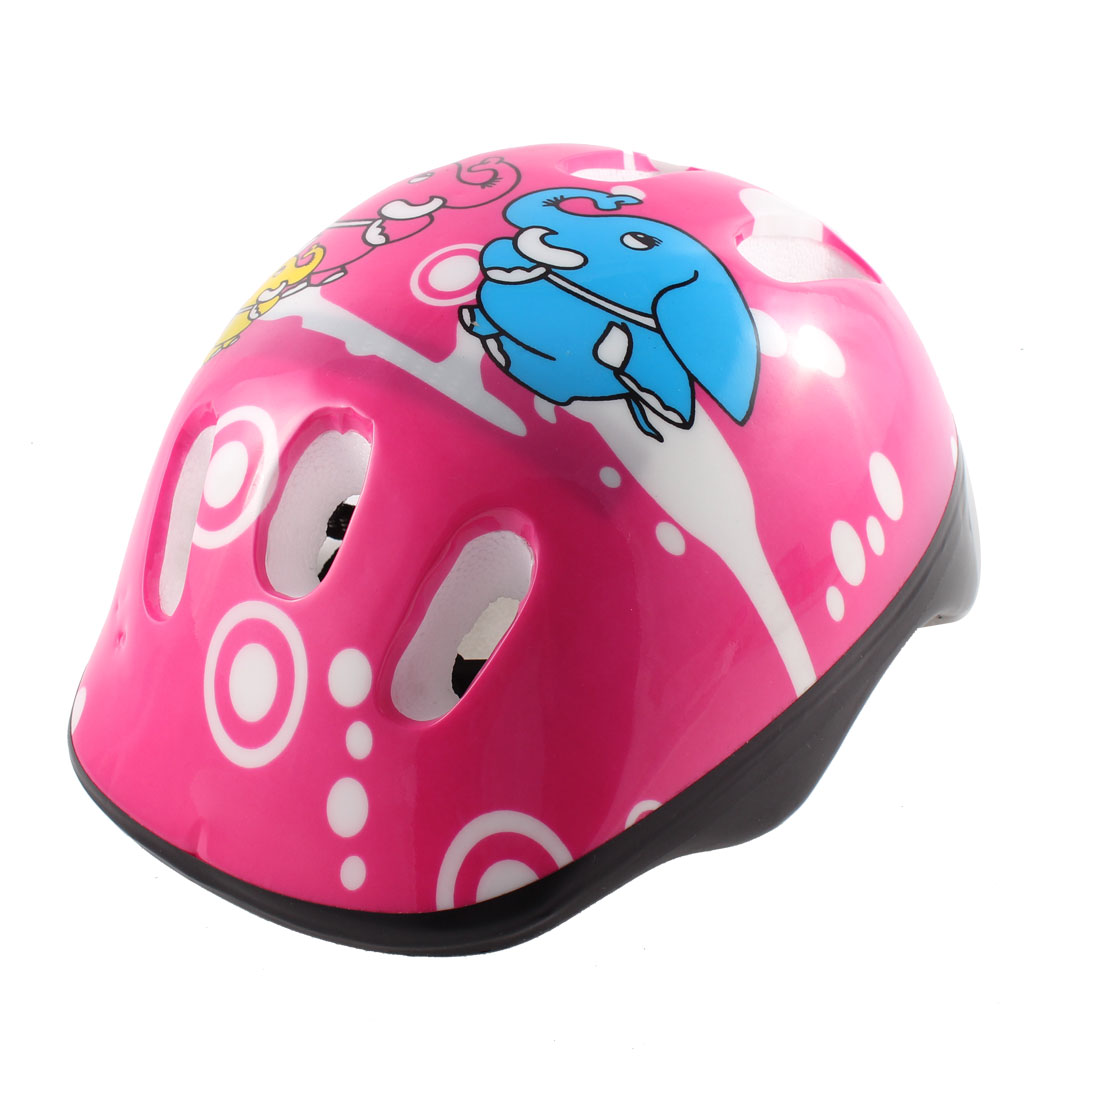 Skateboard Hole Design Elephant Pattern Protective Head Student Cap Pink